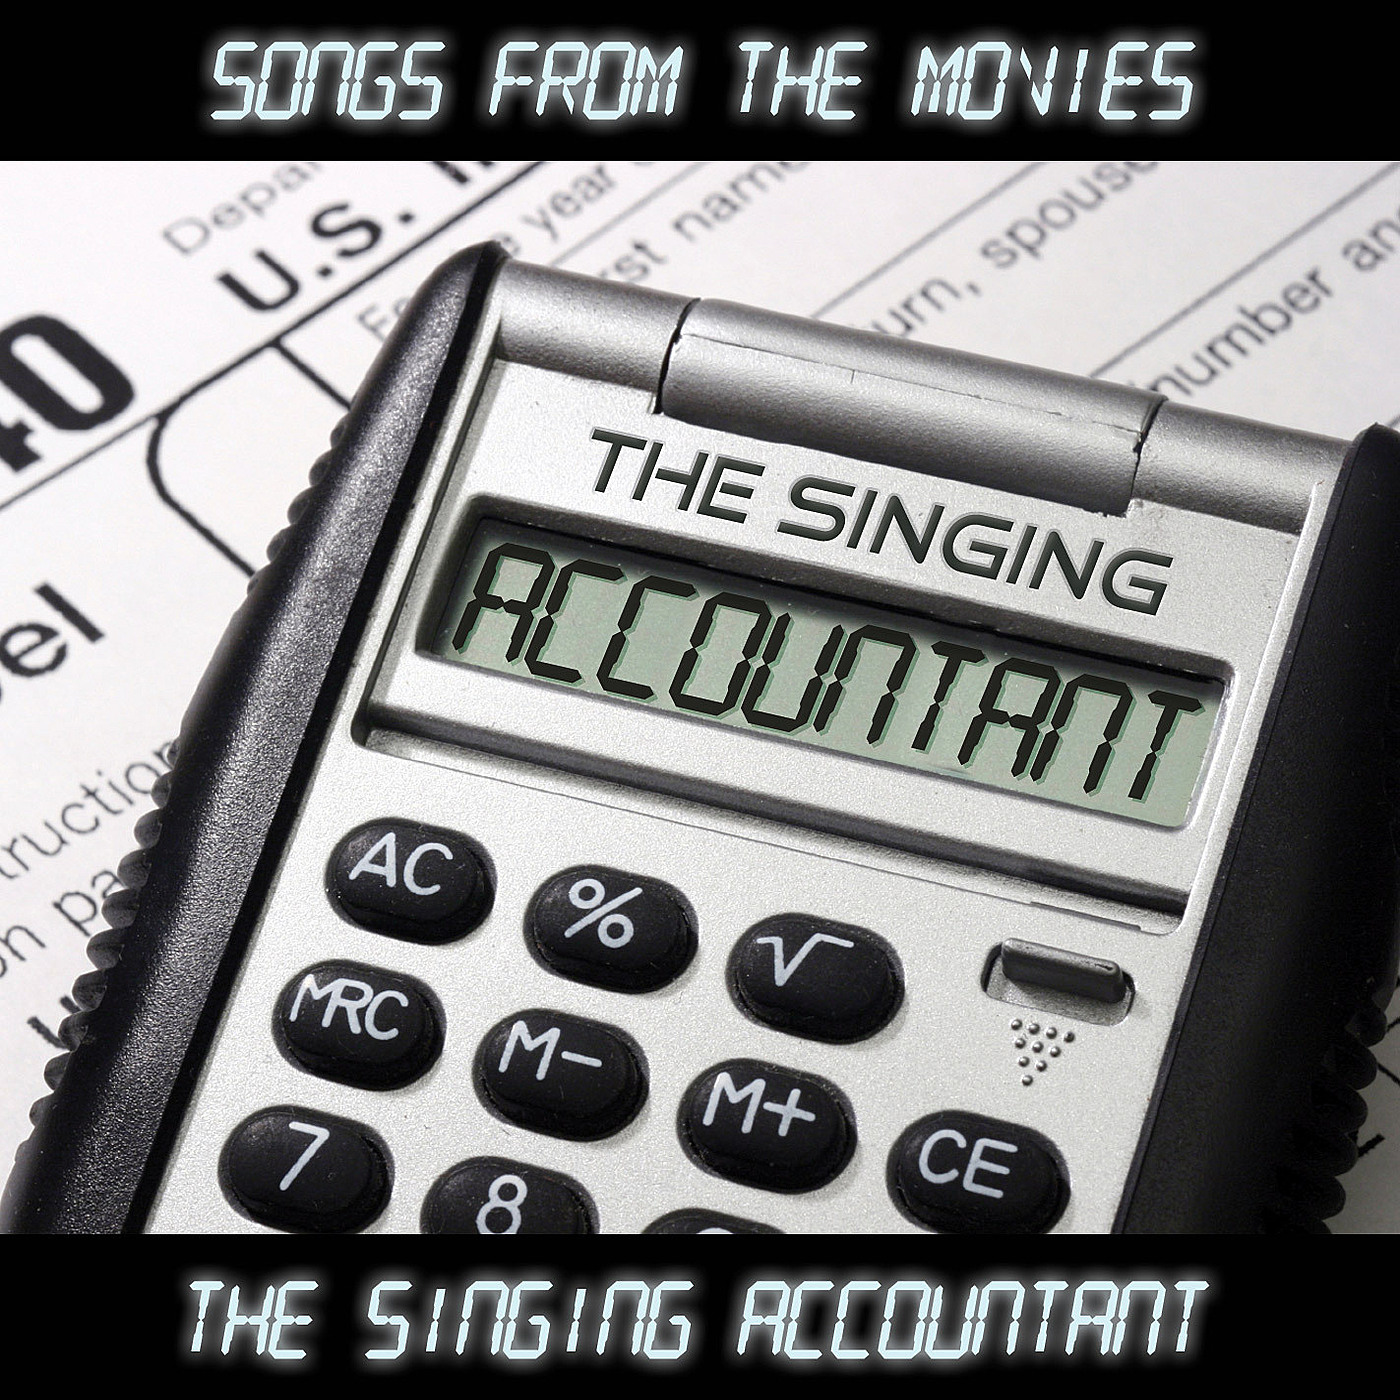 The Singing Accountant - Songs from the Movies